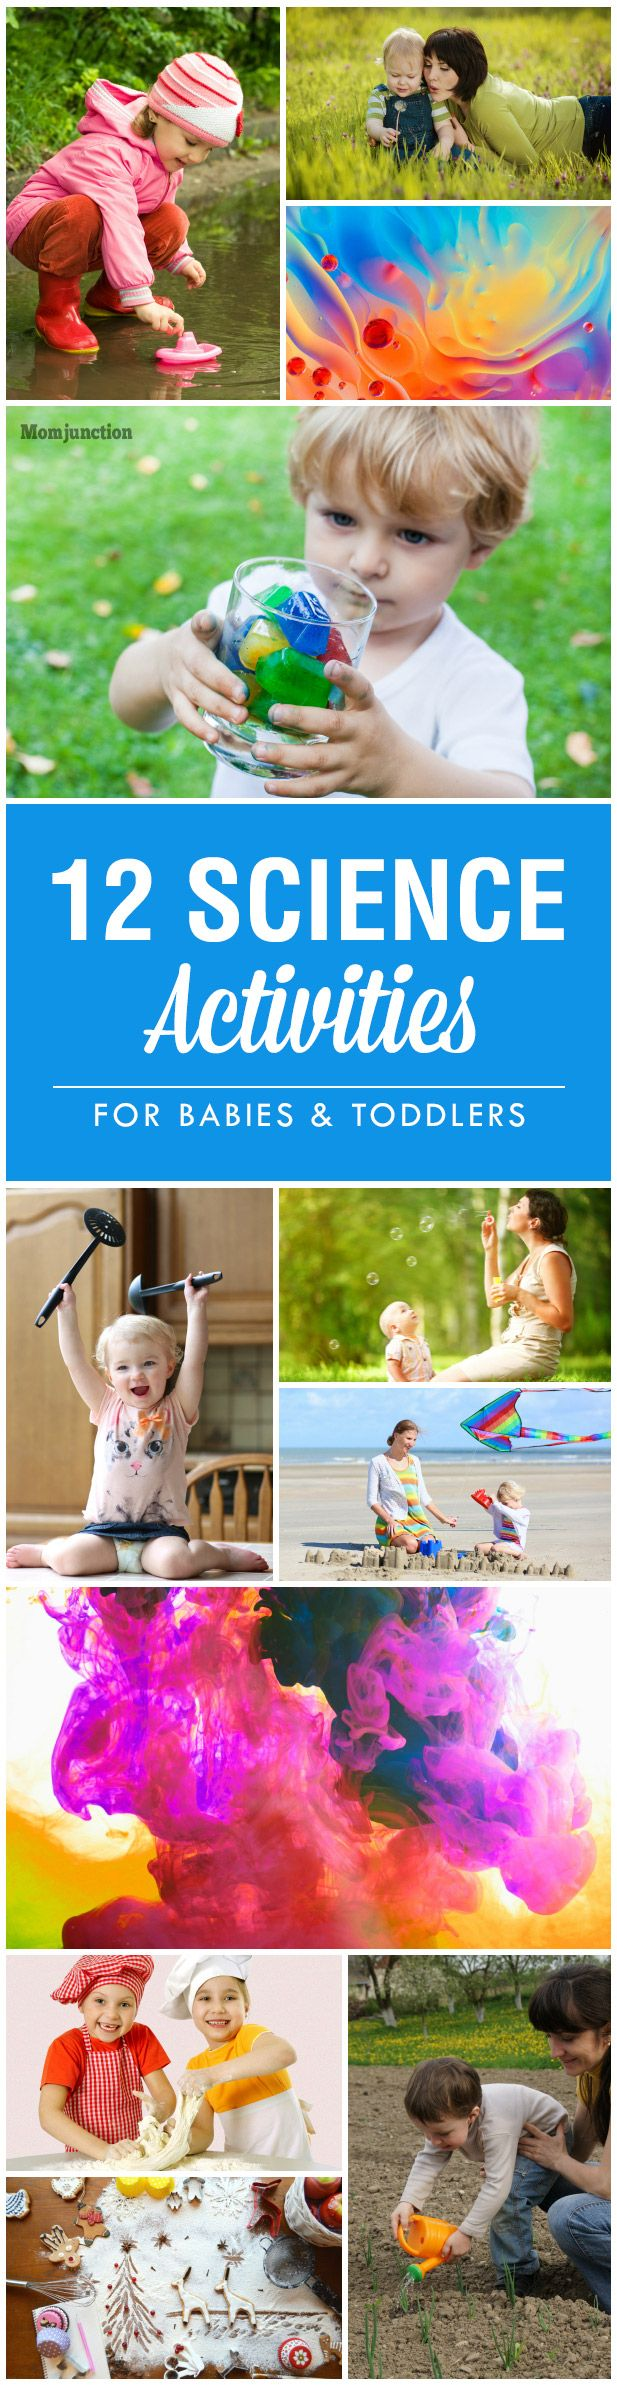 Top 12 Fascinating Science Experiments For Preschoolers: Engaging them in simple science activities will strengthen their logical power and help them learn while having fun.